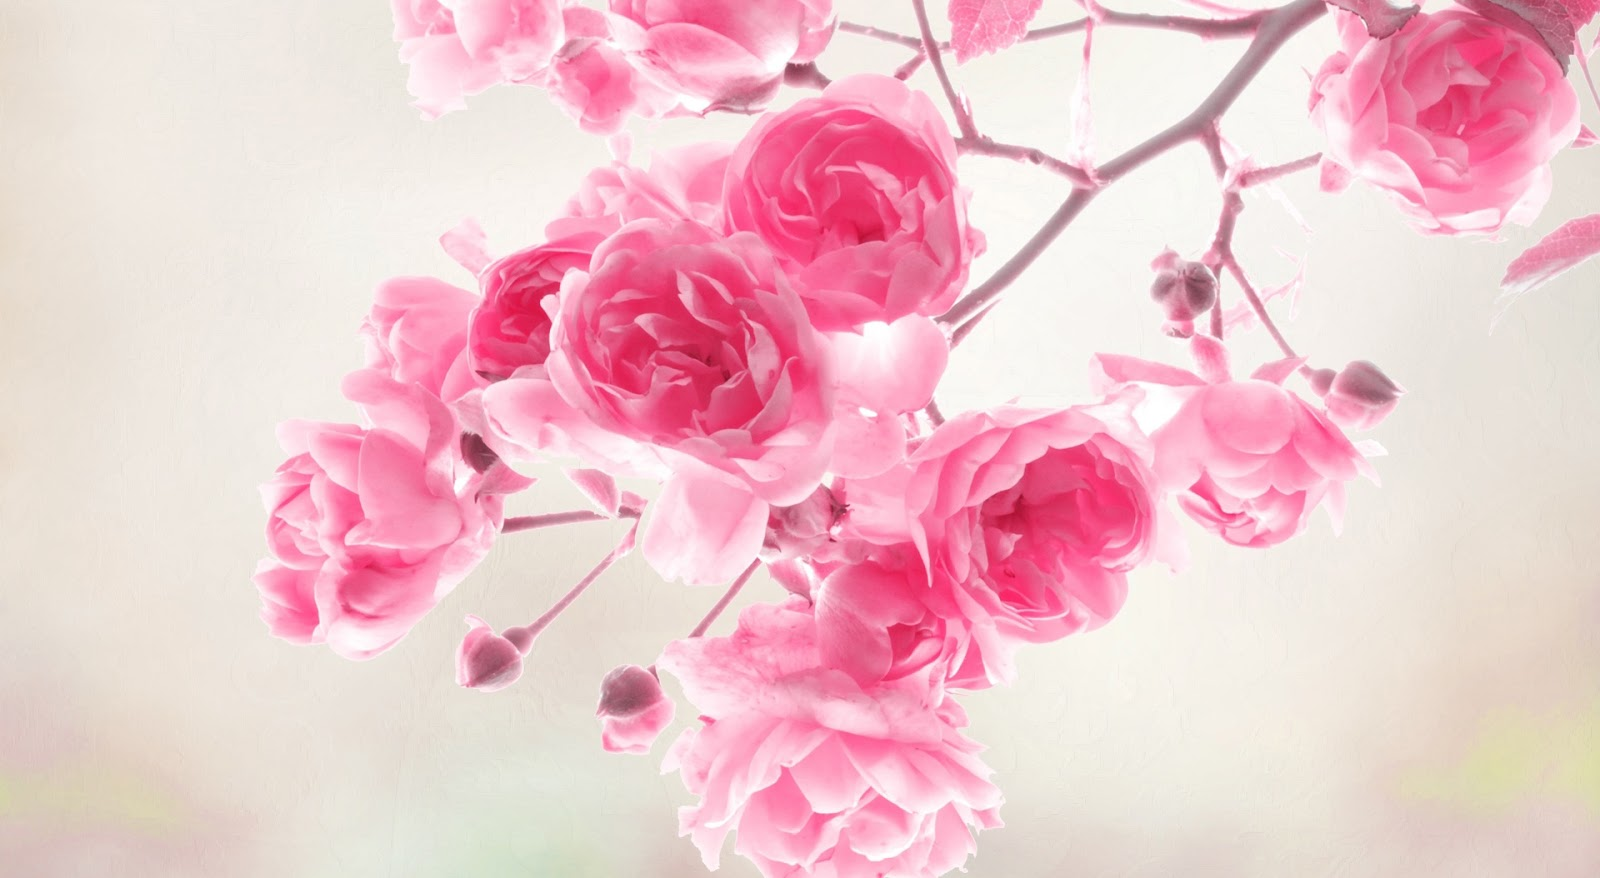 Free pictures of pink flowers image download Wallpaper Pink Flowers image download